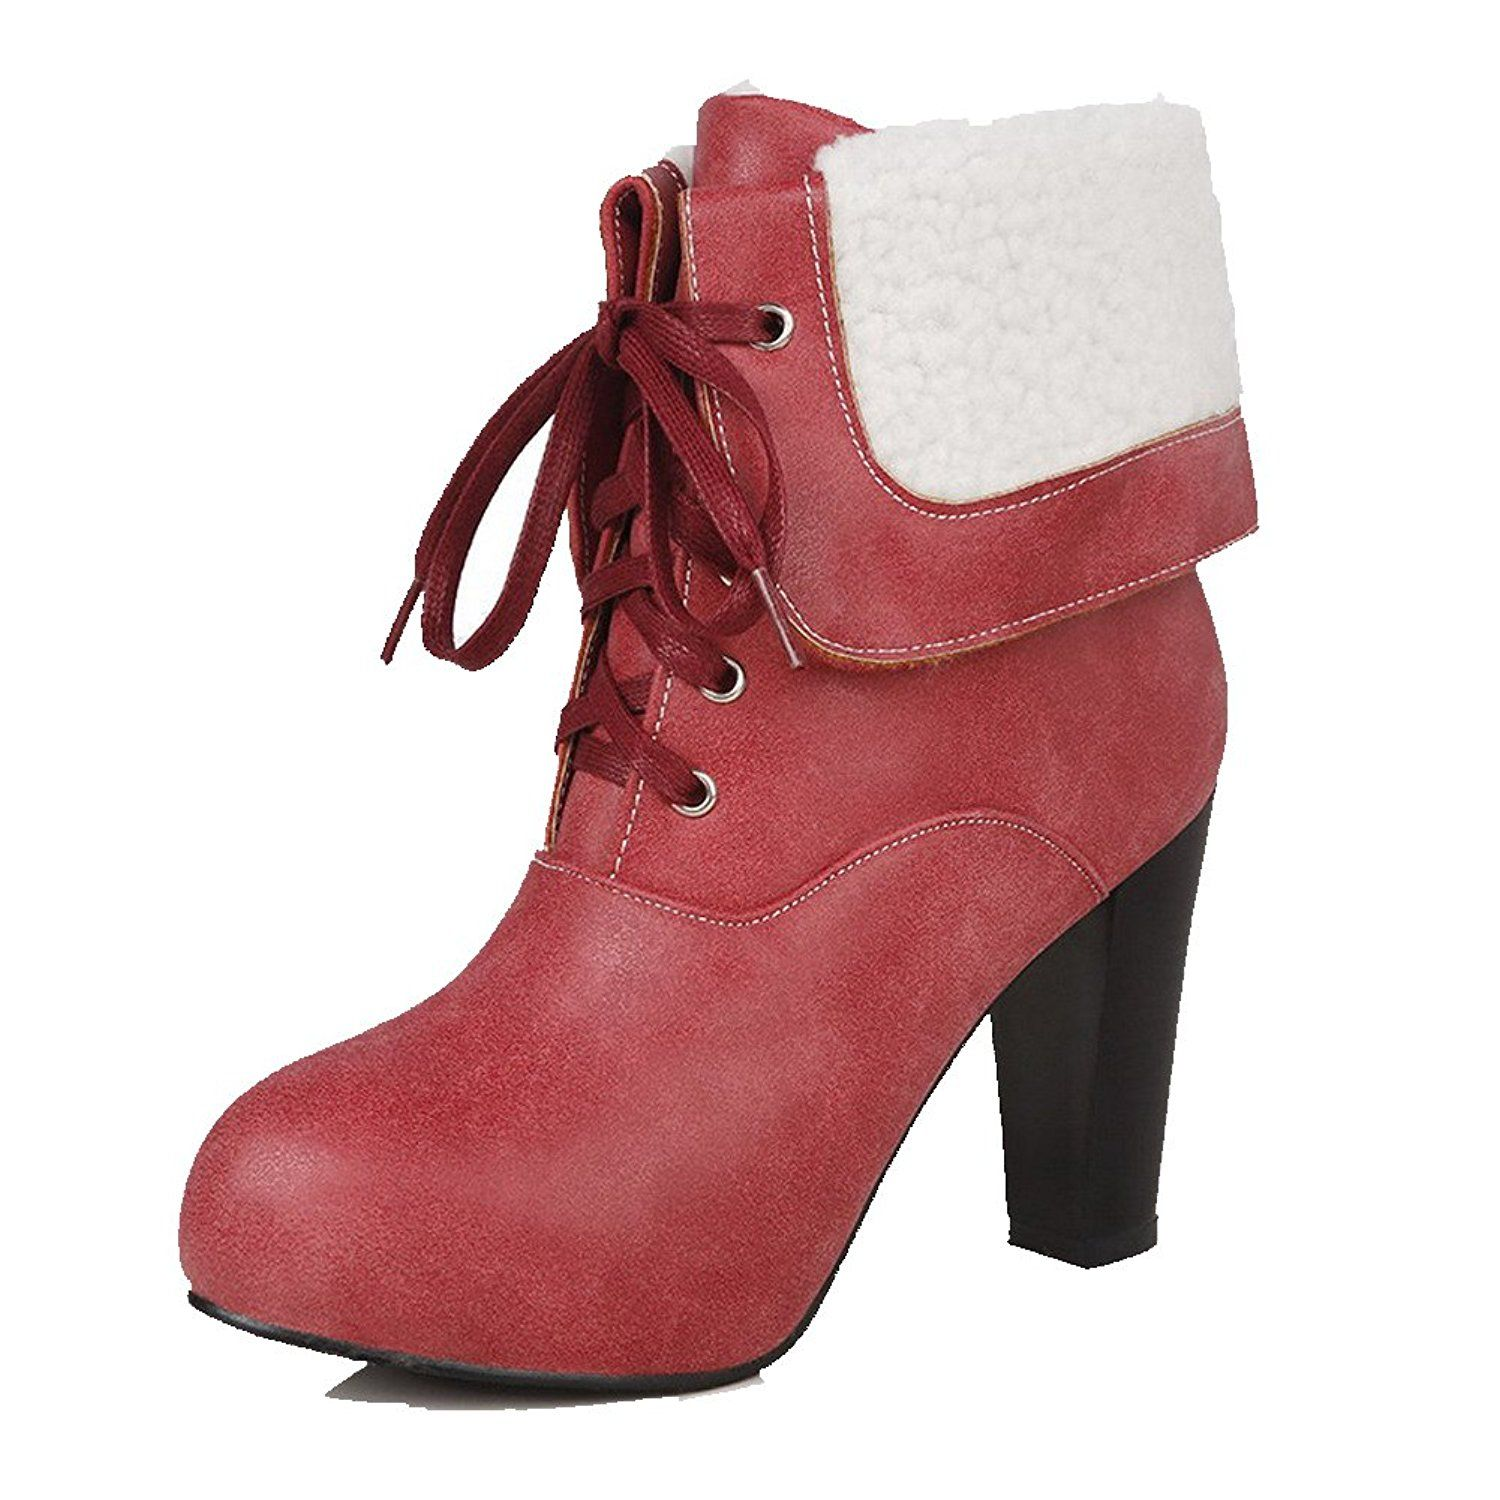 AgooLar Women's Lace Up Round Closed Toe High Heels Solid Boots ** For more information, visit image link.